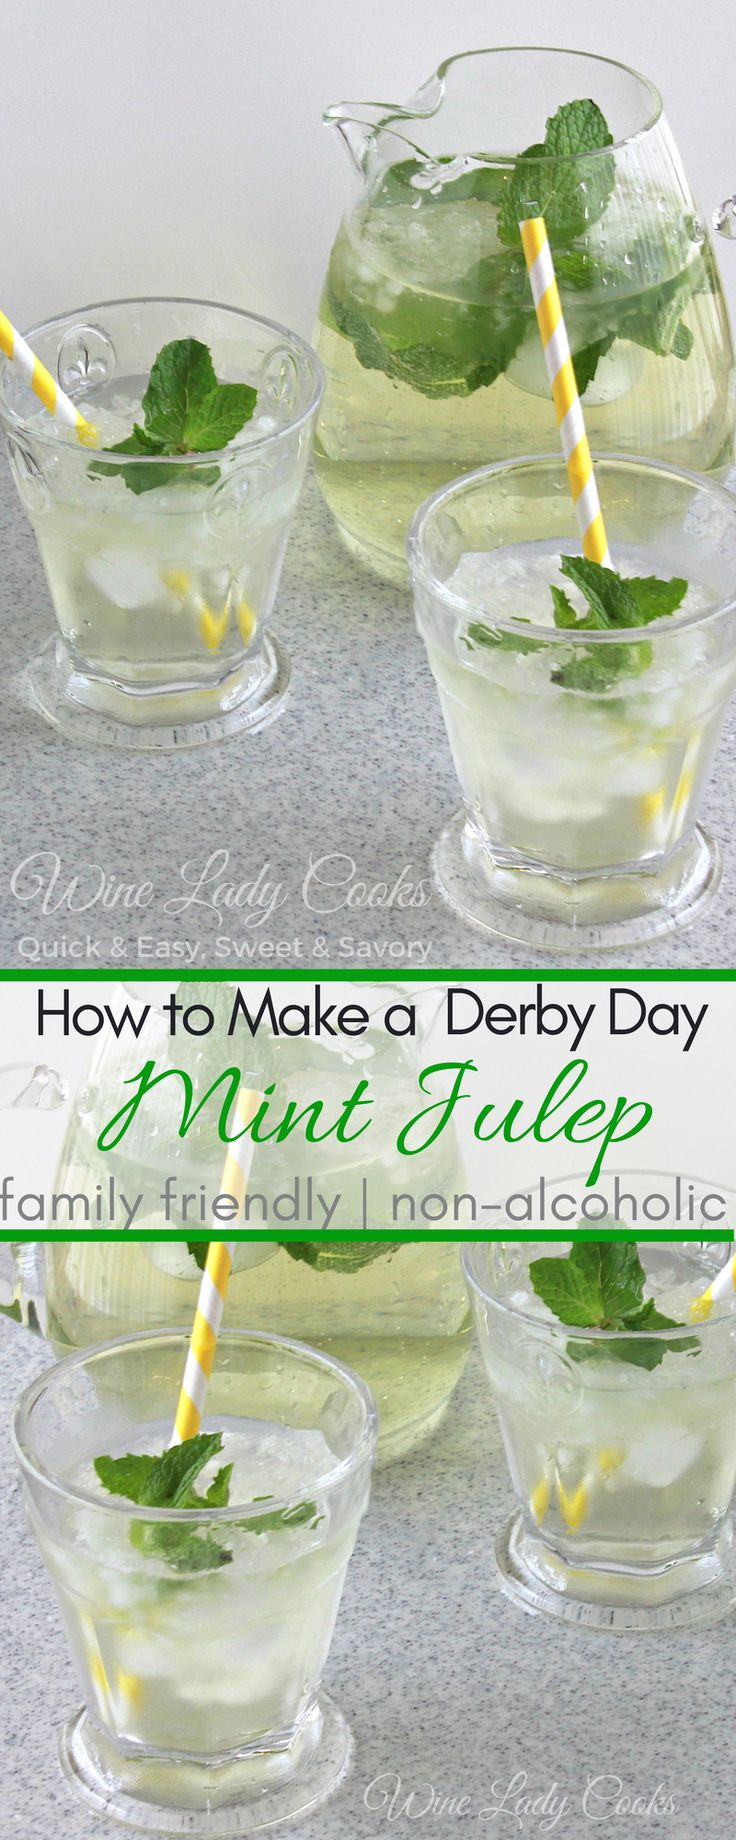 How to Make Mint Julep Family Friendly recipe is a refreshing summer drink everyone will enjoy. Click thru for details.  #mint #julep #KentuckyDerby #nonalcoholic #summer #drinks #familyfriendly